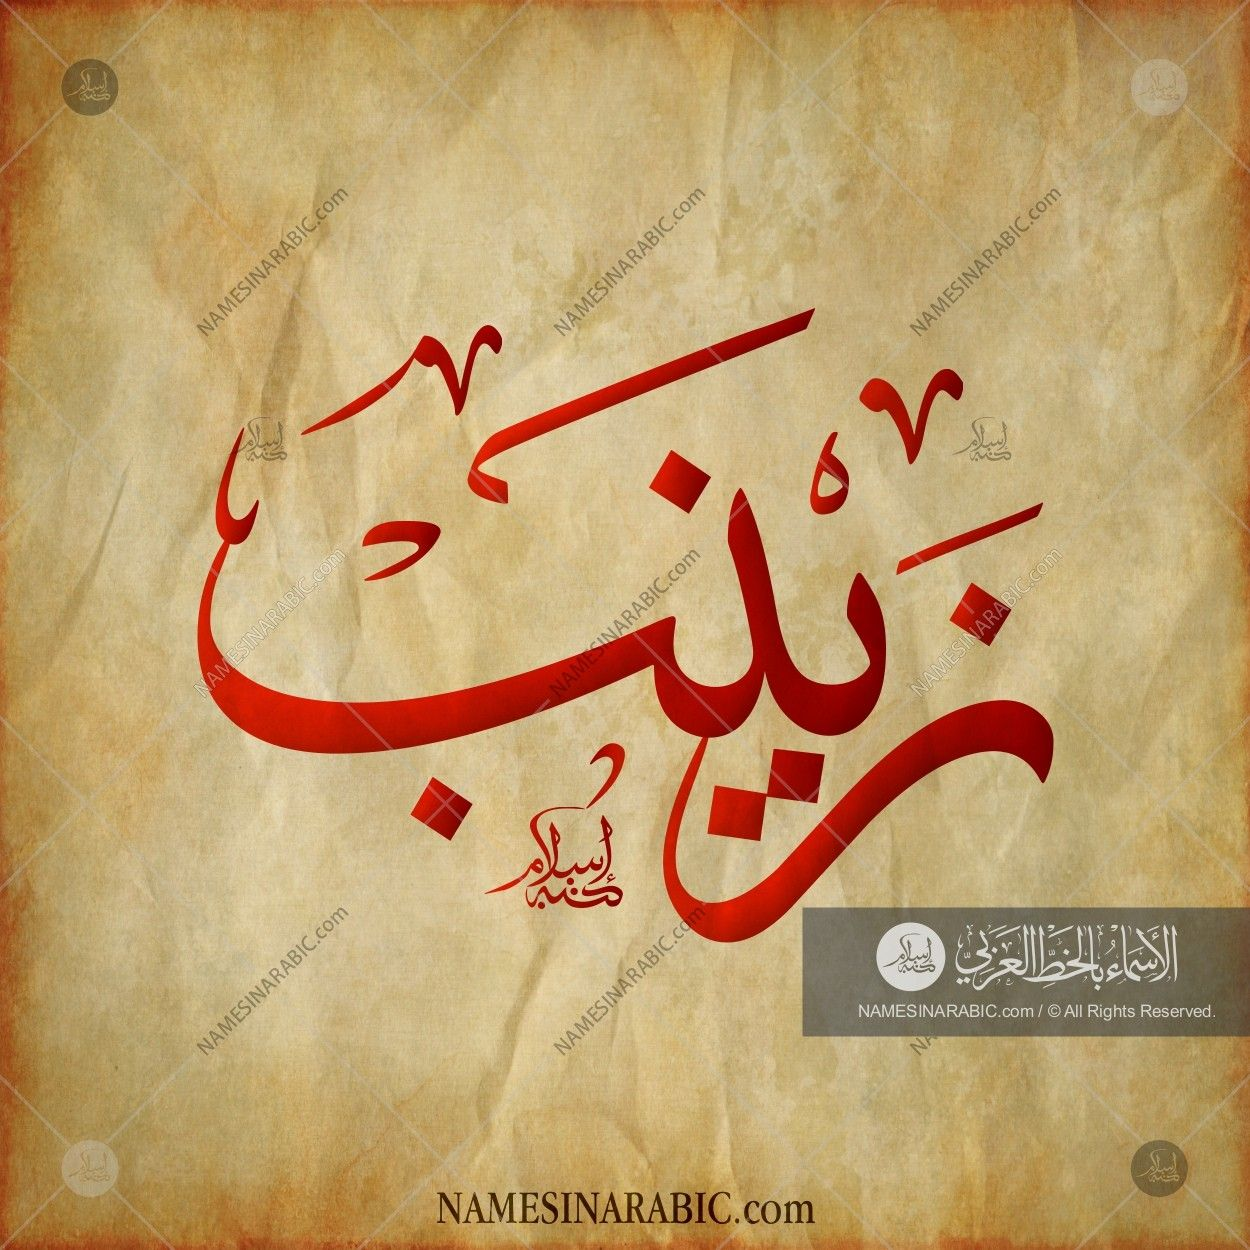 Zainab - زينب / Names in Arabic Calligraphy | Name# 1833